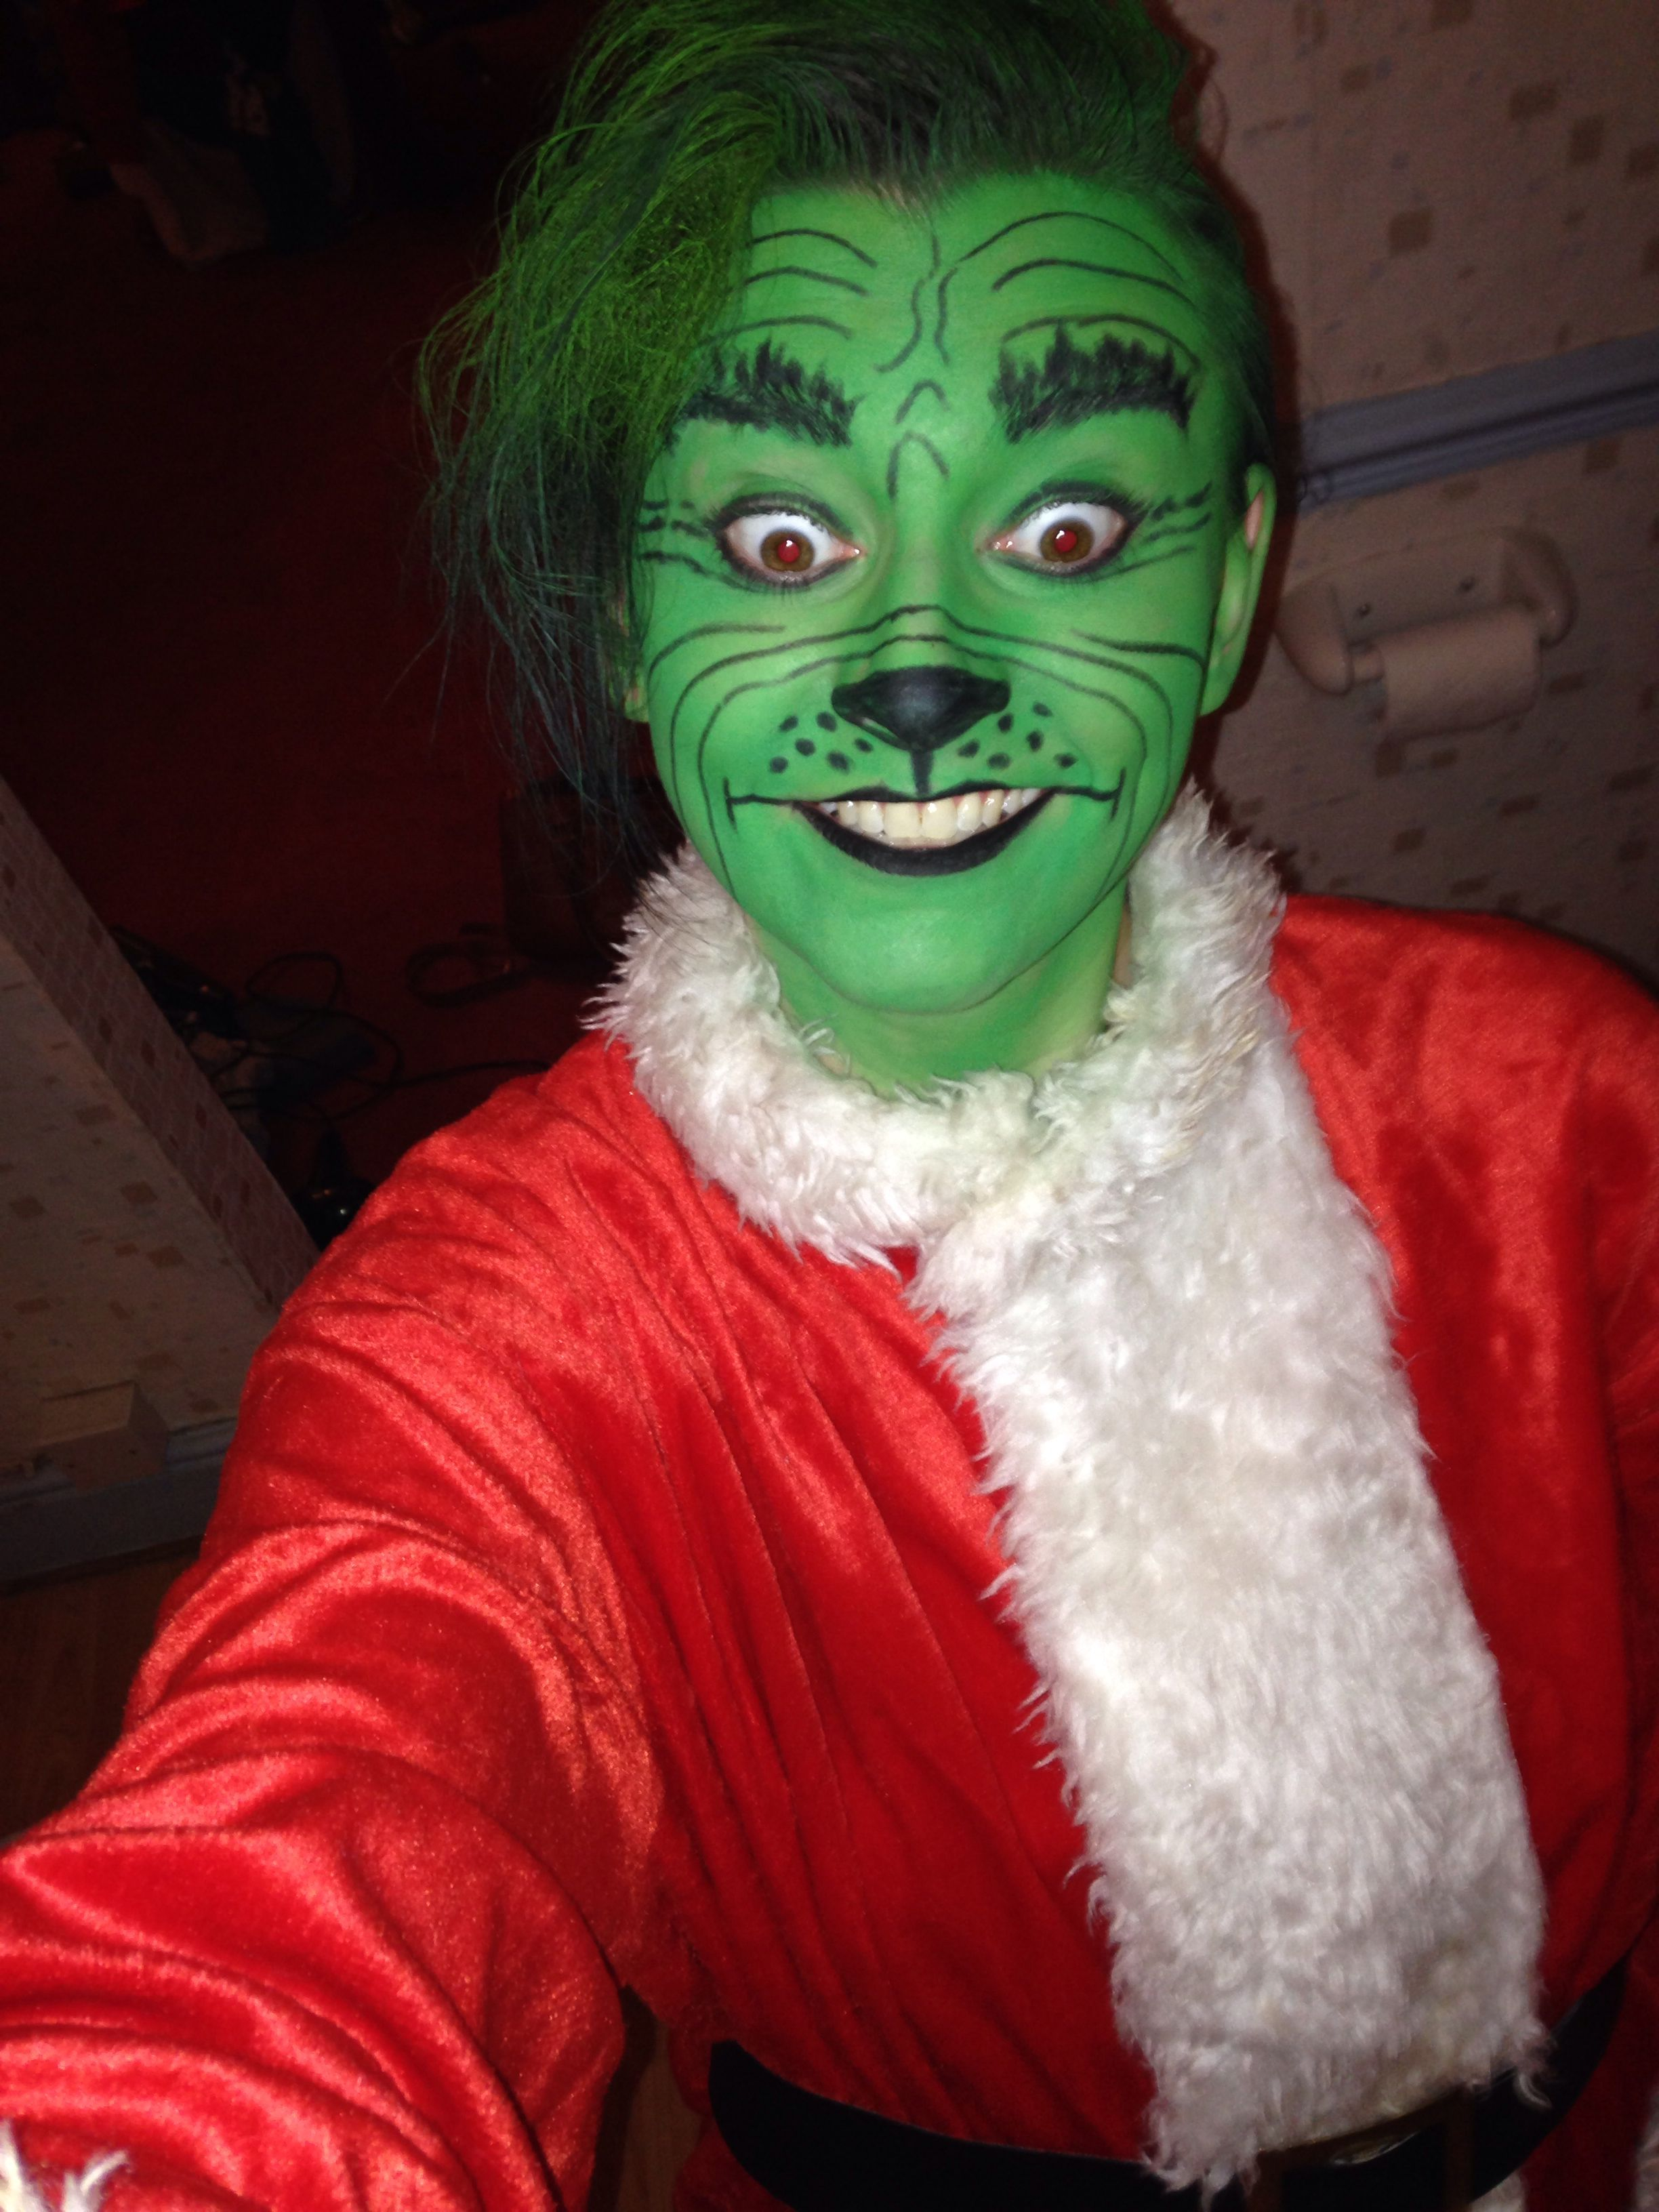 How to make your own grinch costume - The Grinch Costume